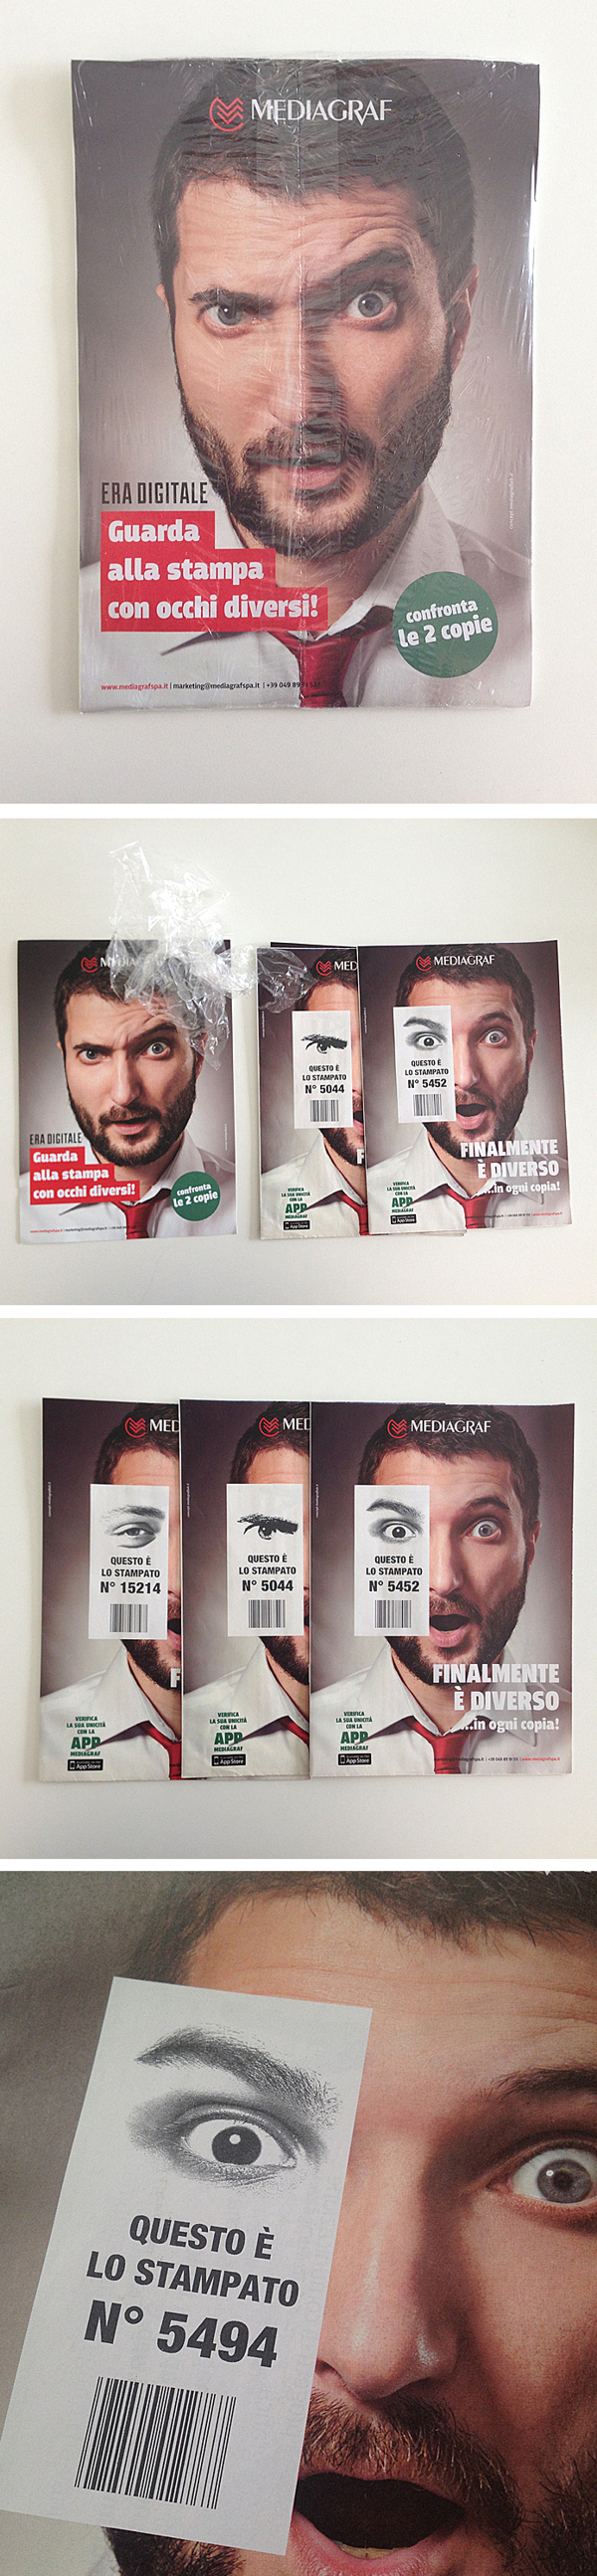 Roto-offset variable data printing brochure on Behance